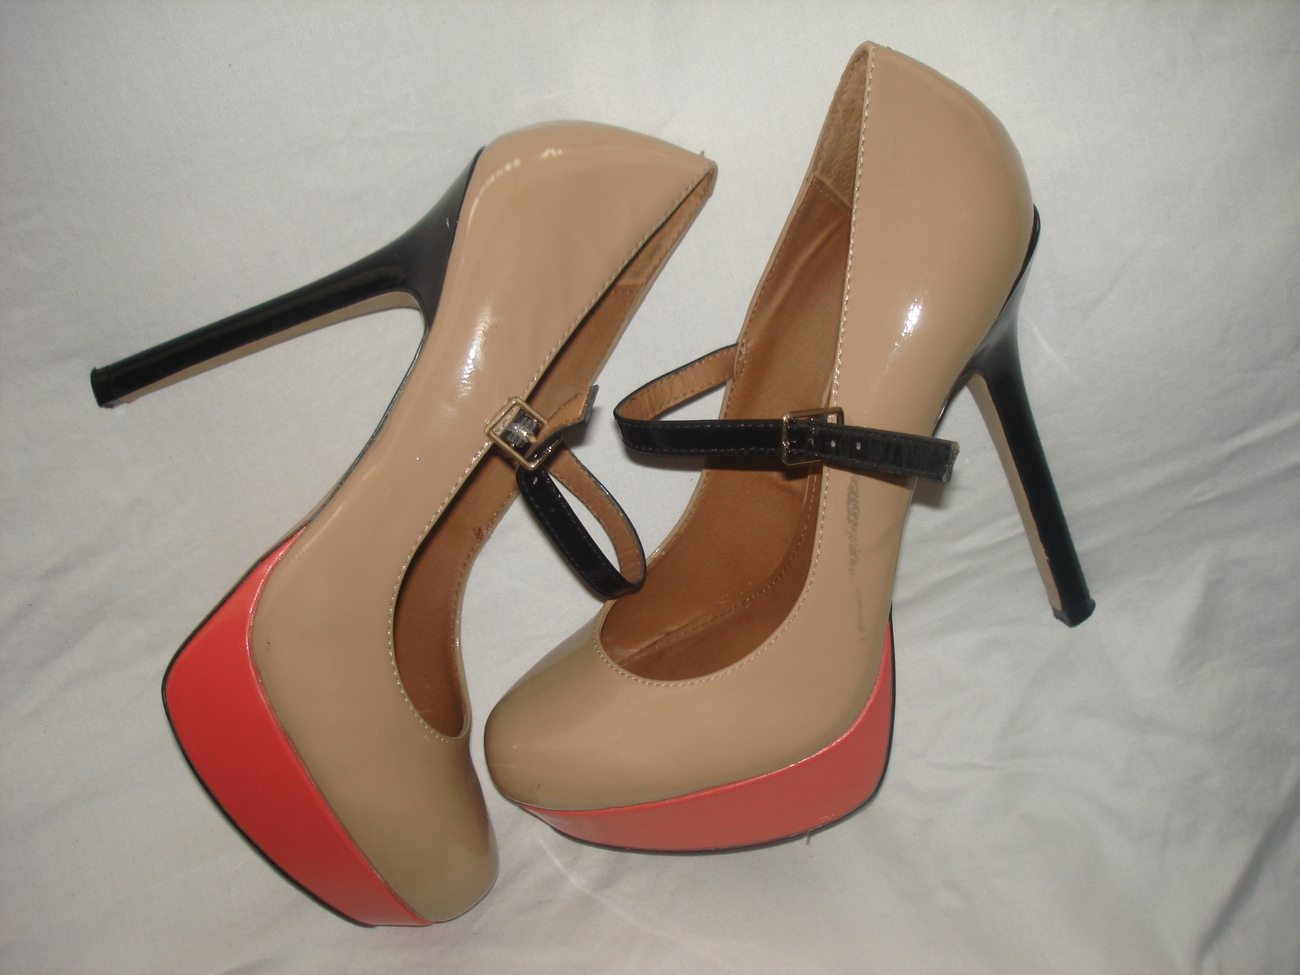 Steve Madden Bella  tri-color patent leather size 8.5 color beige,coral,black  $